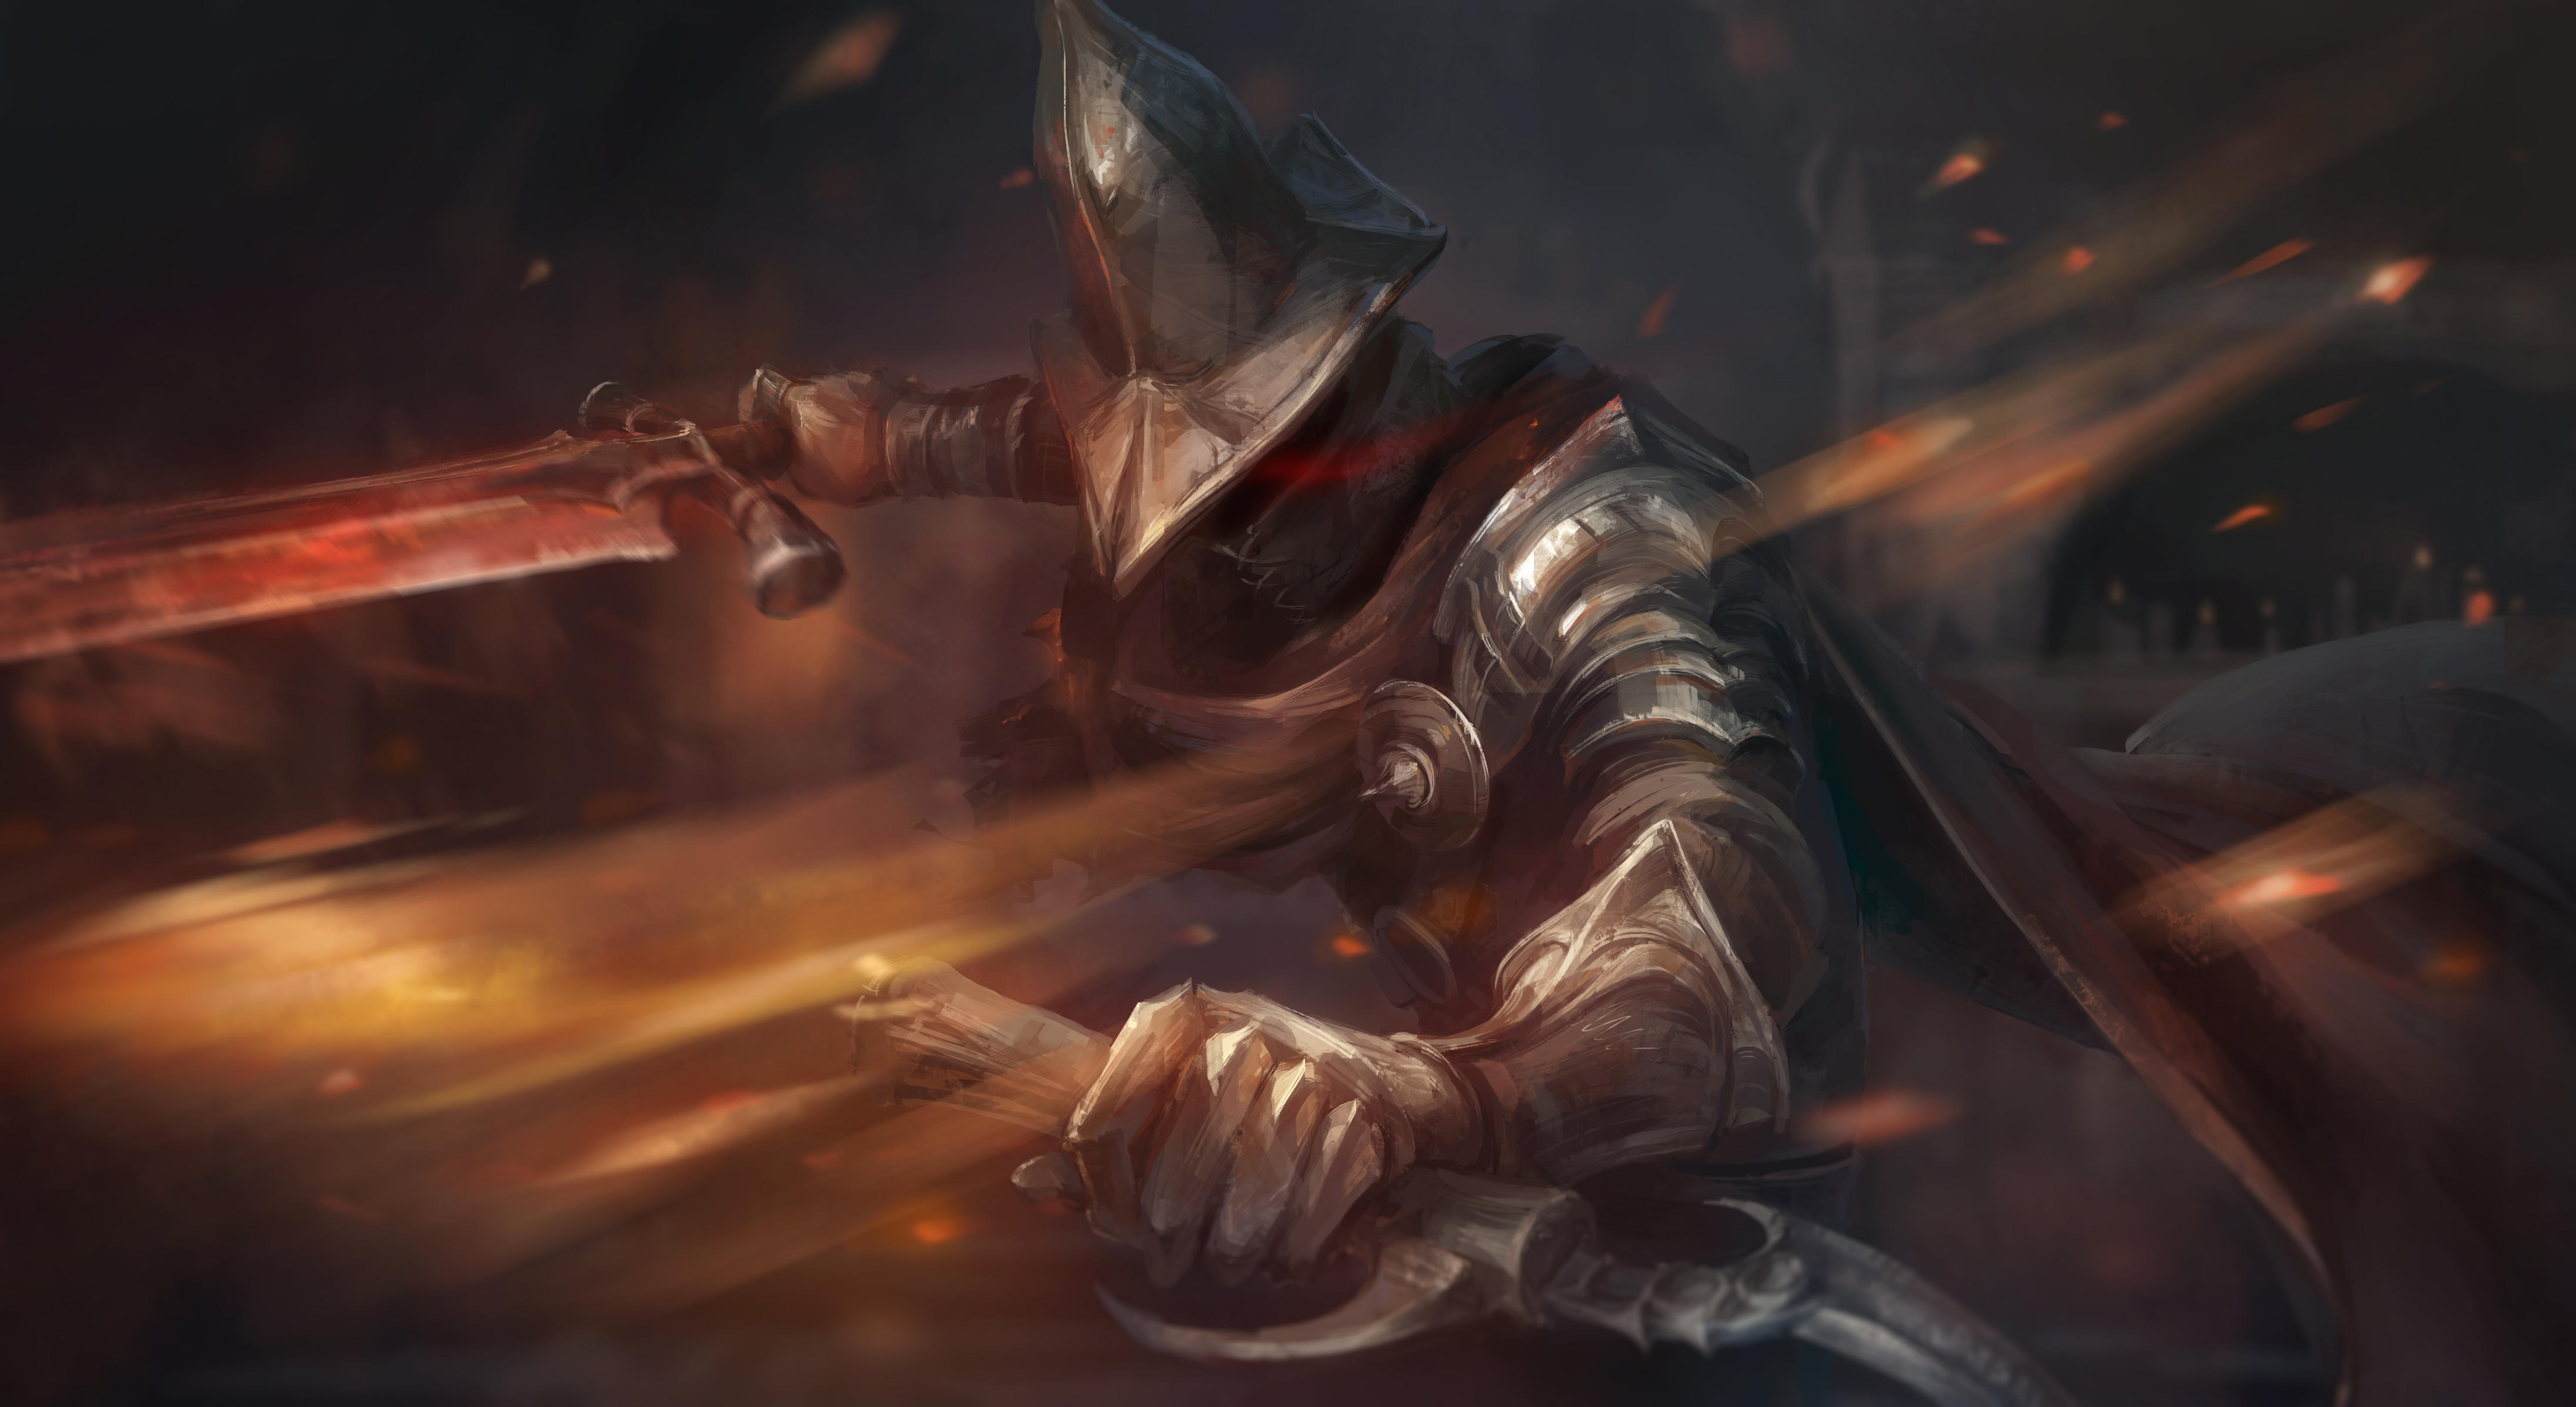 Wallpaper download abyss - Watchers Abyss Download Abyss Watchers Image